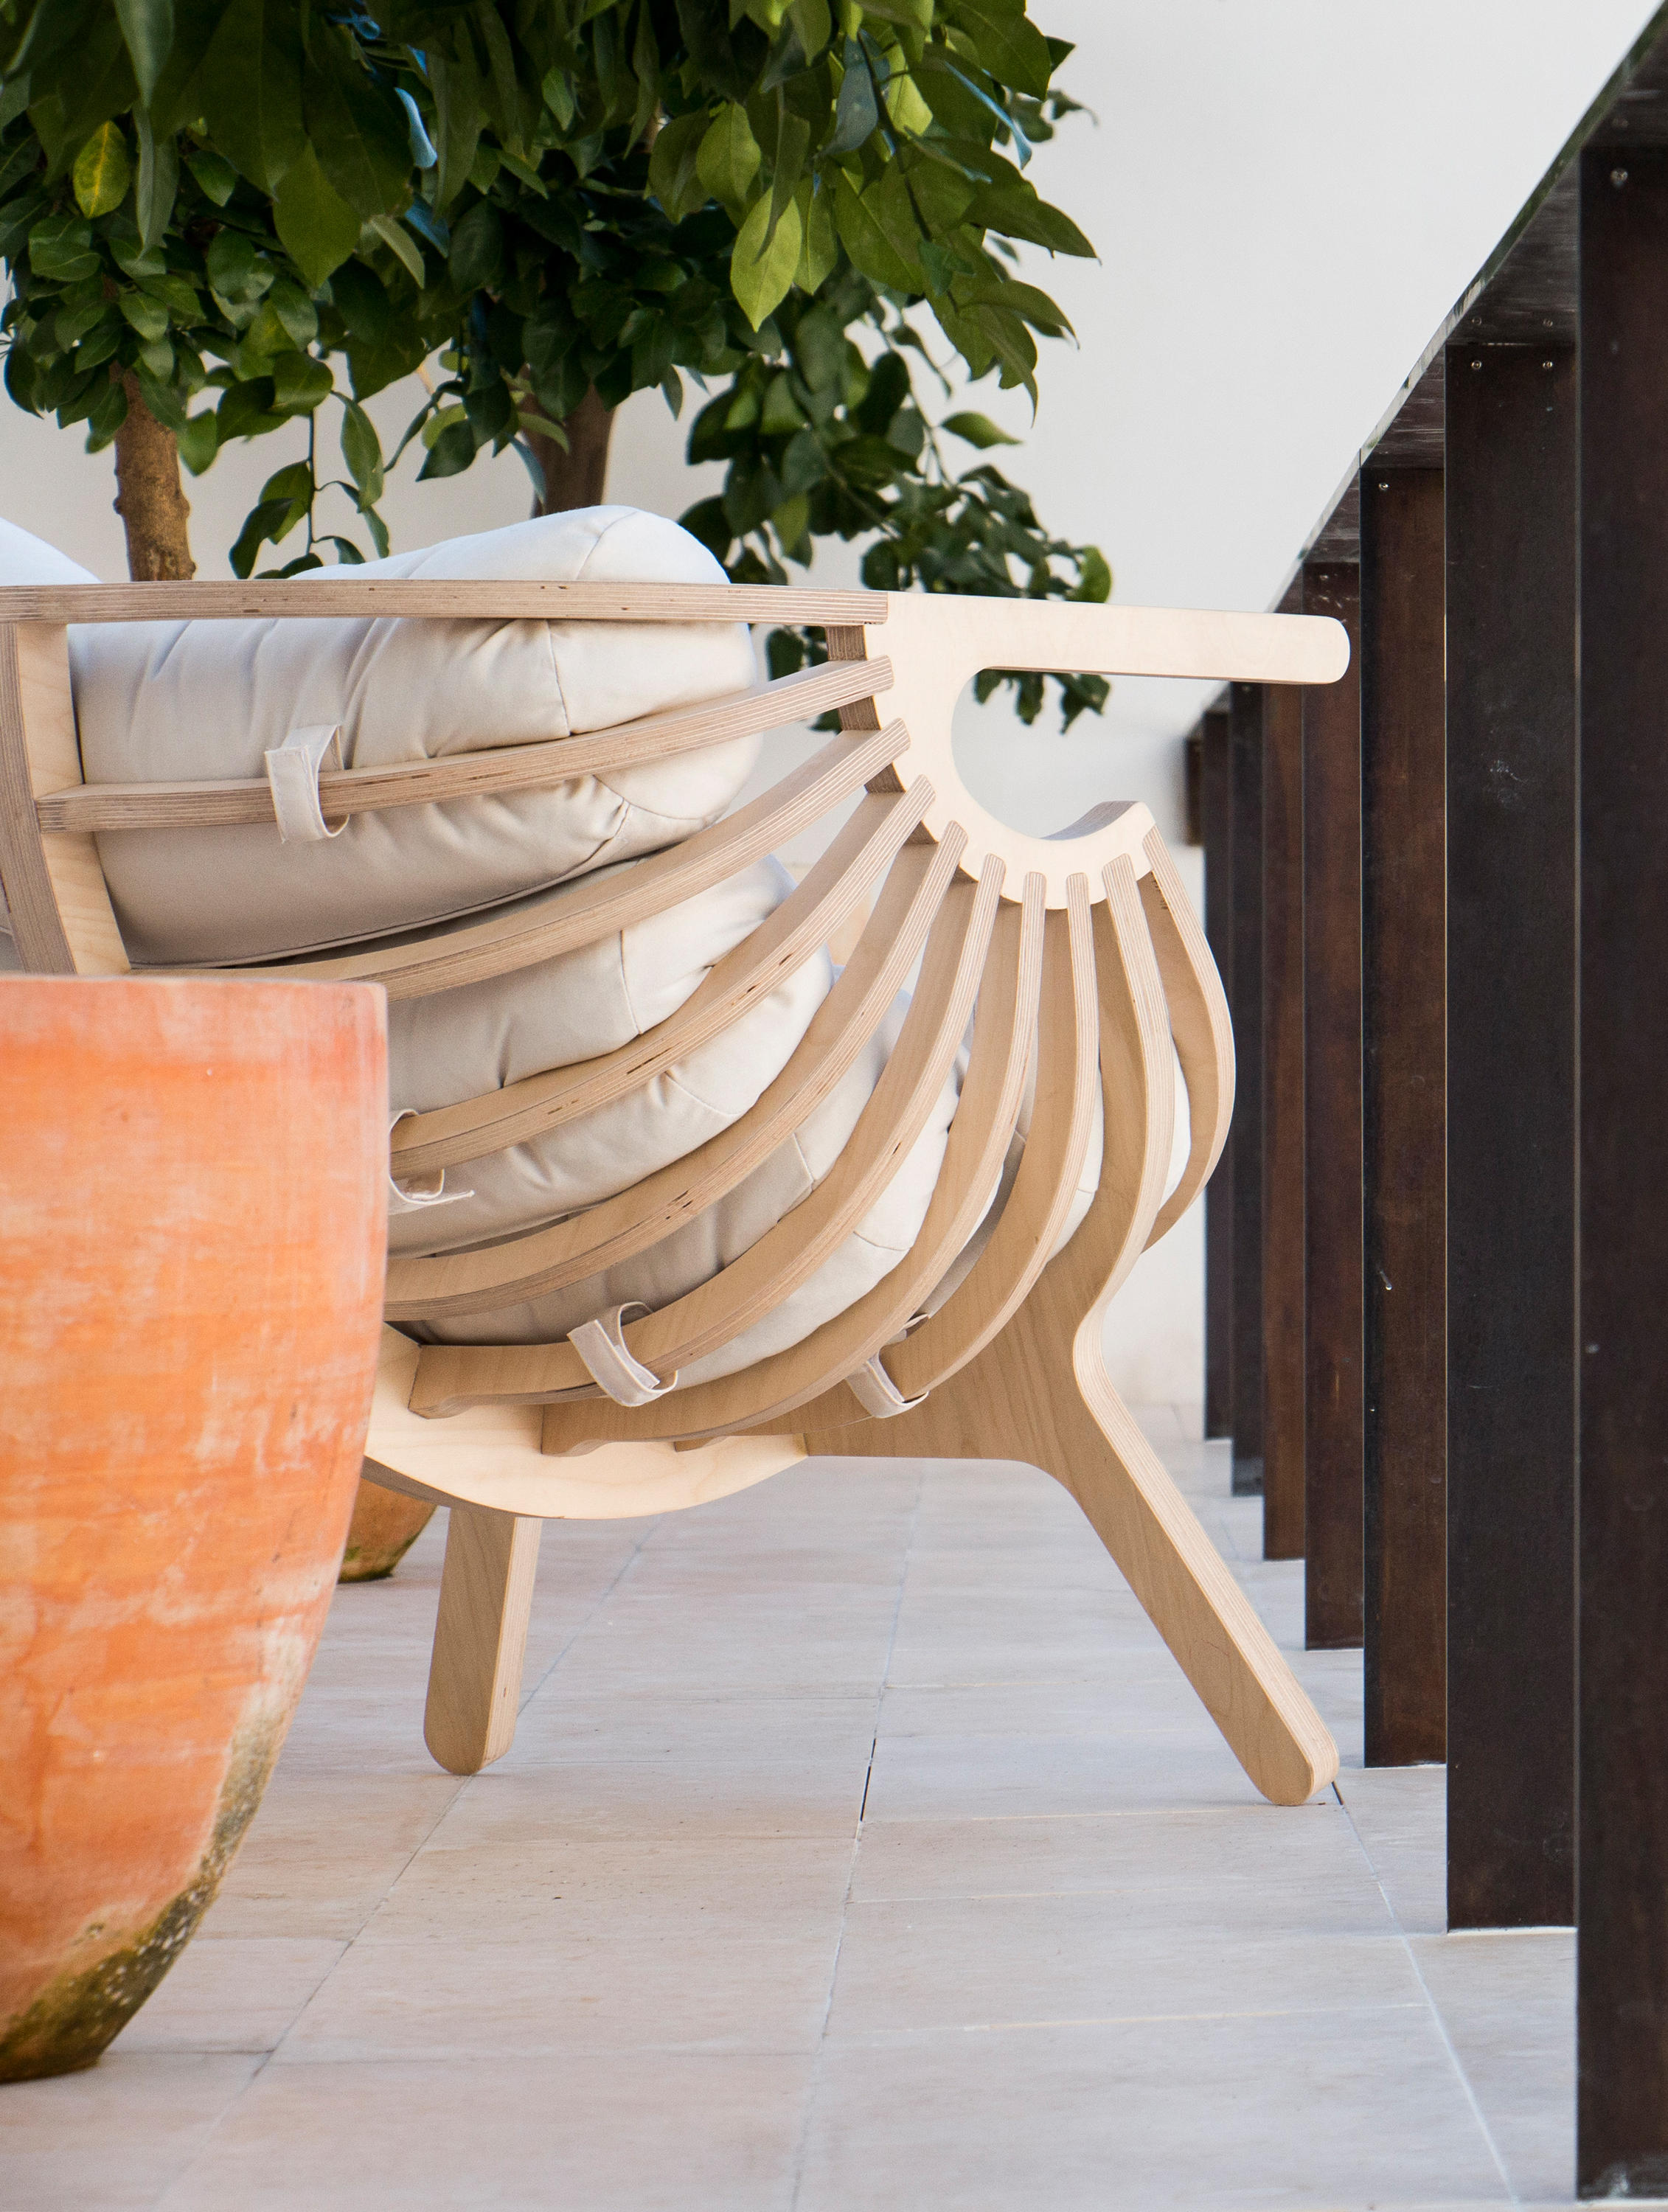 Shell chair lounge chairs from branca lisboa architonic - Fauteuil suspendu cocoon ...